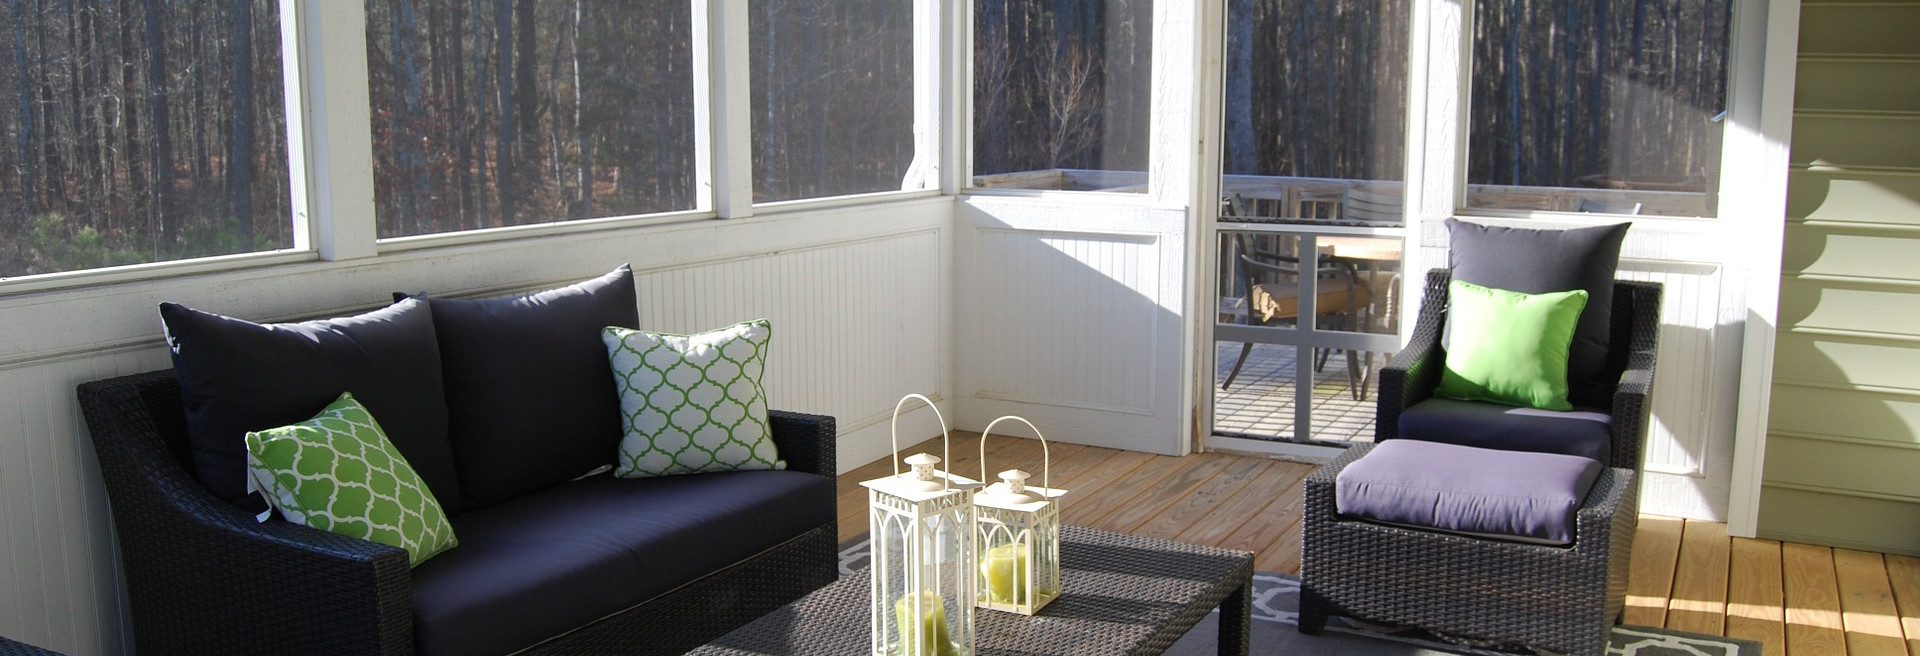 Sunroom - Additional Living Space